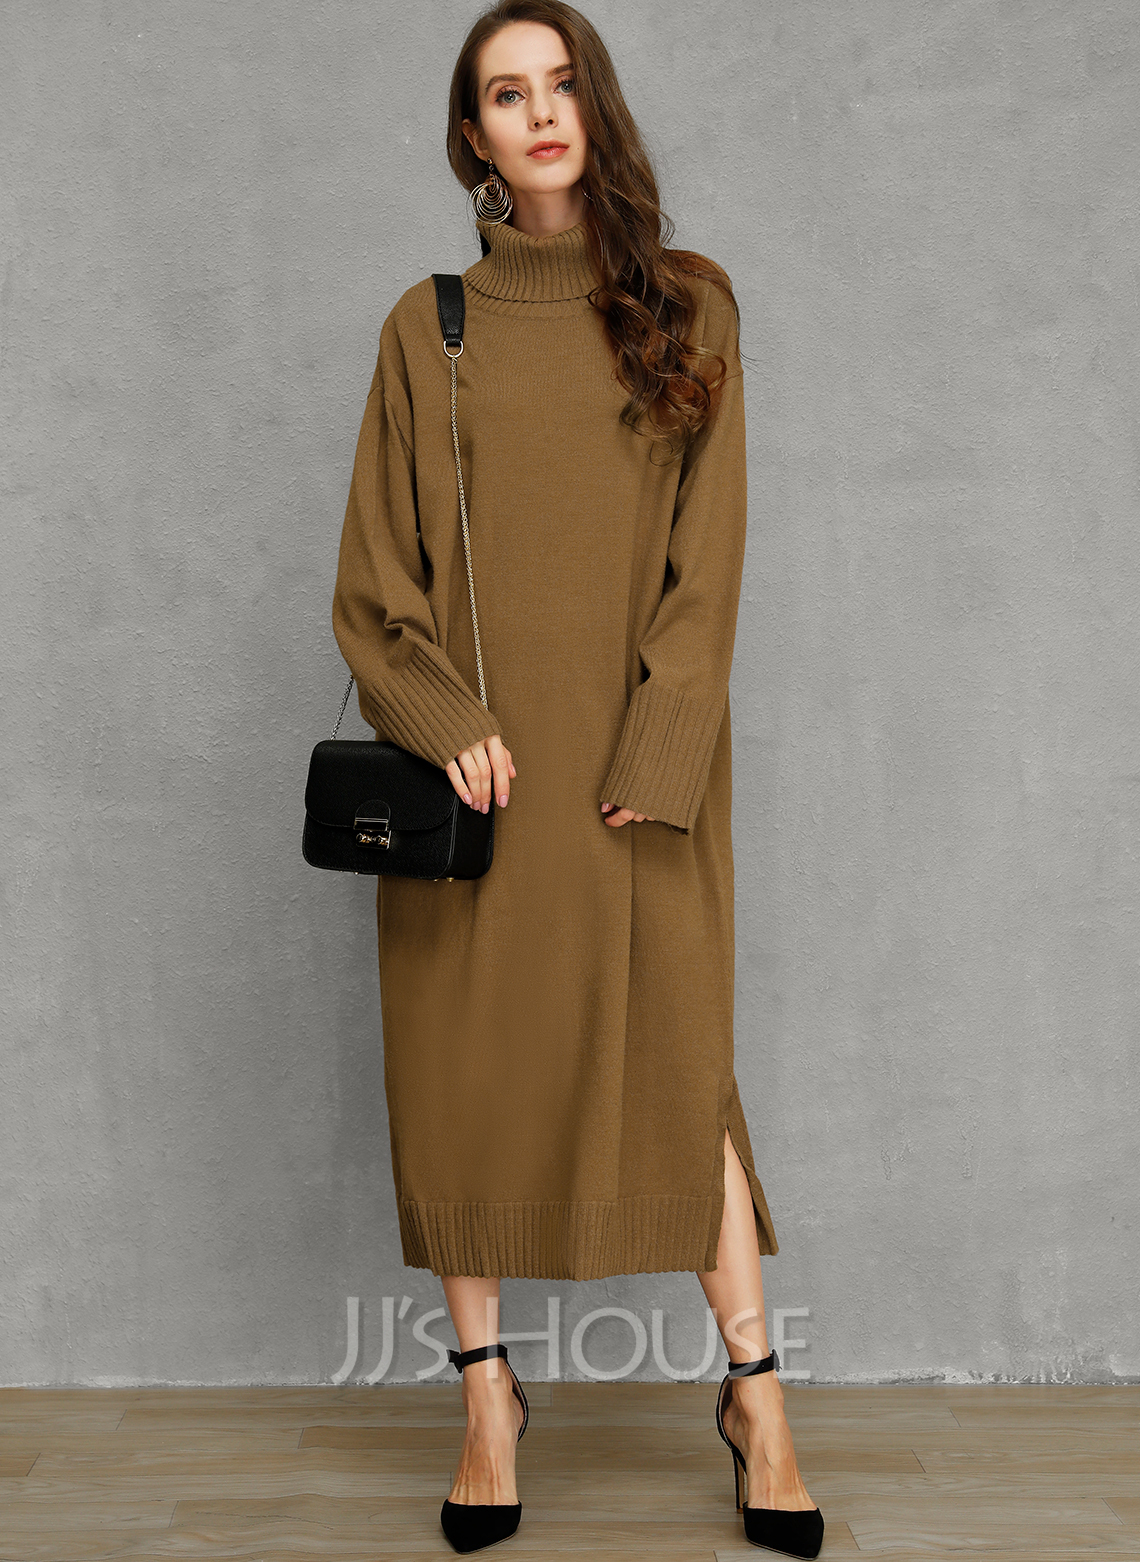 Chunky knit Solid Acrylic Turtleneck Pullovers Sweater Dresses Sweaters